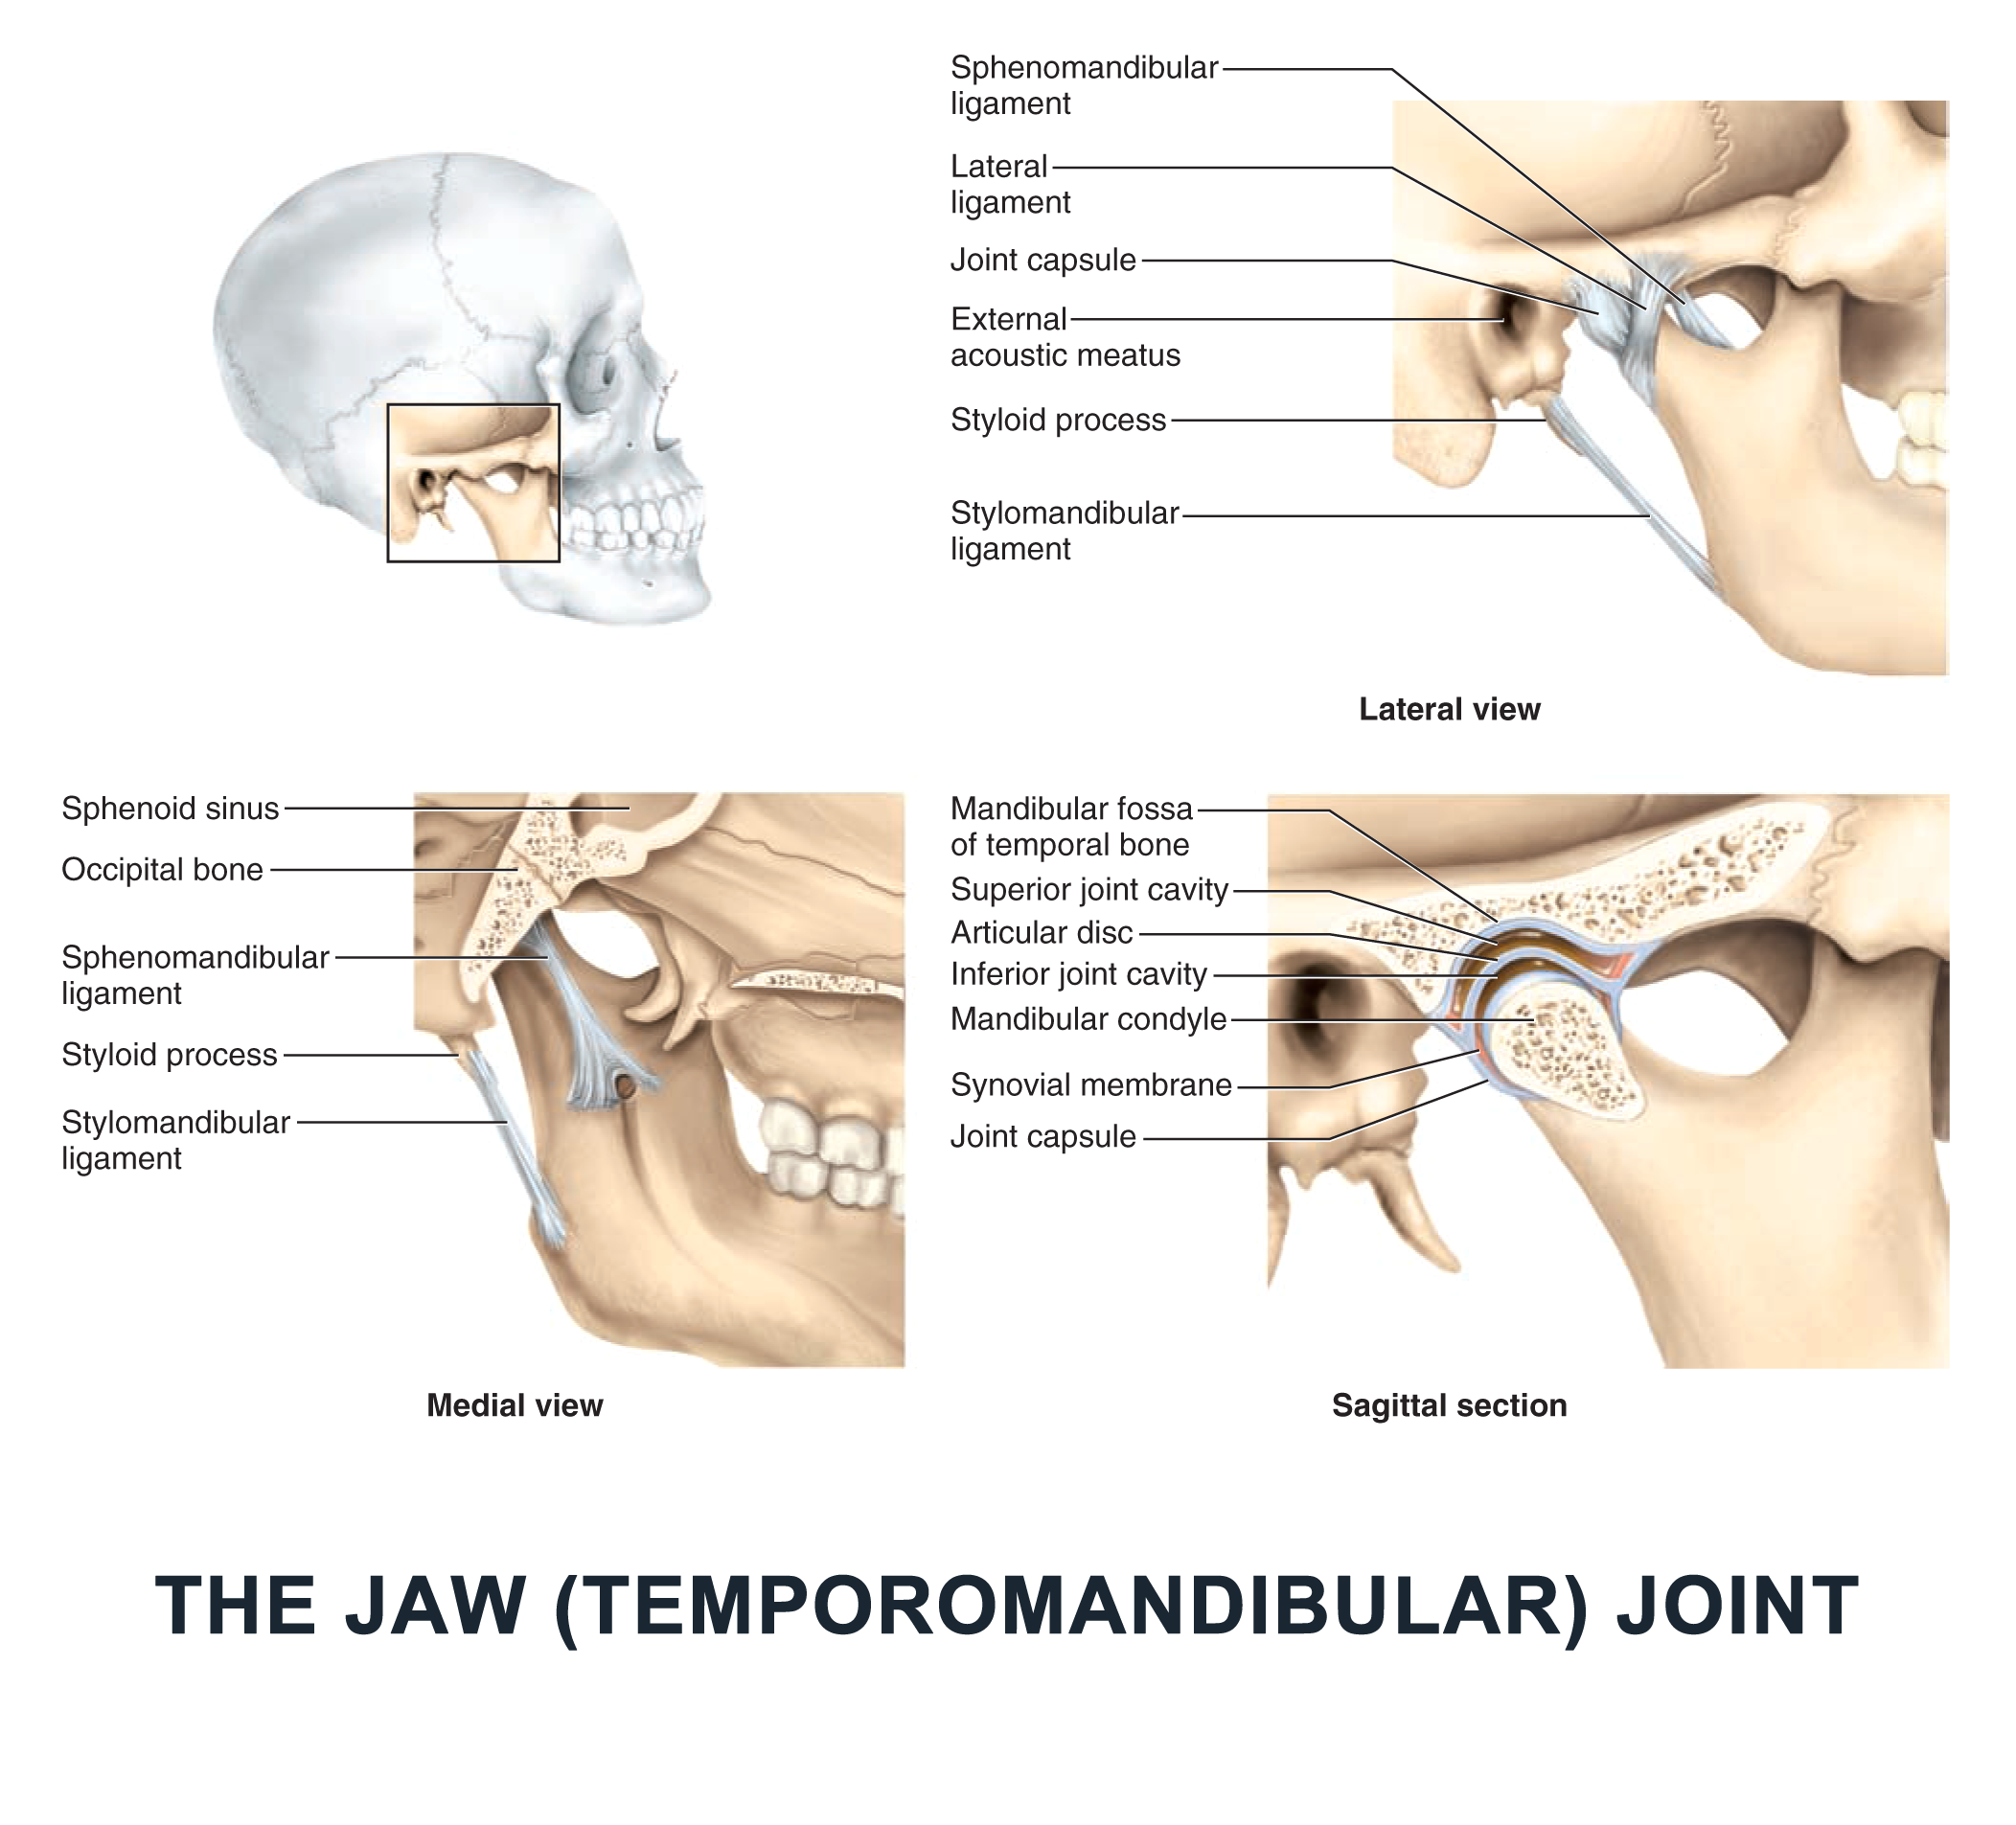 small resolution of the jaw temporomandibular joint anatomy images illustrations anatomy images character design